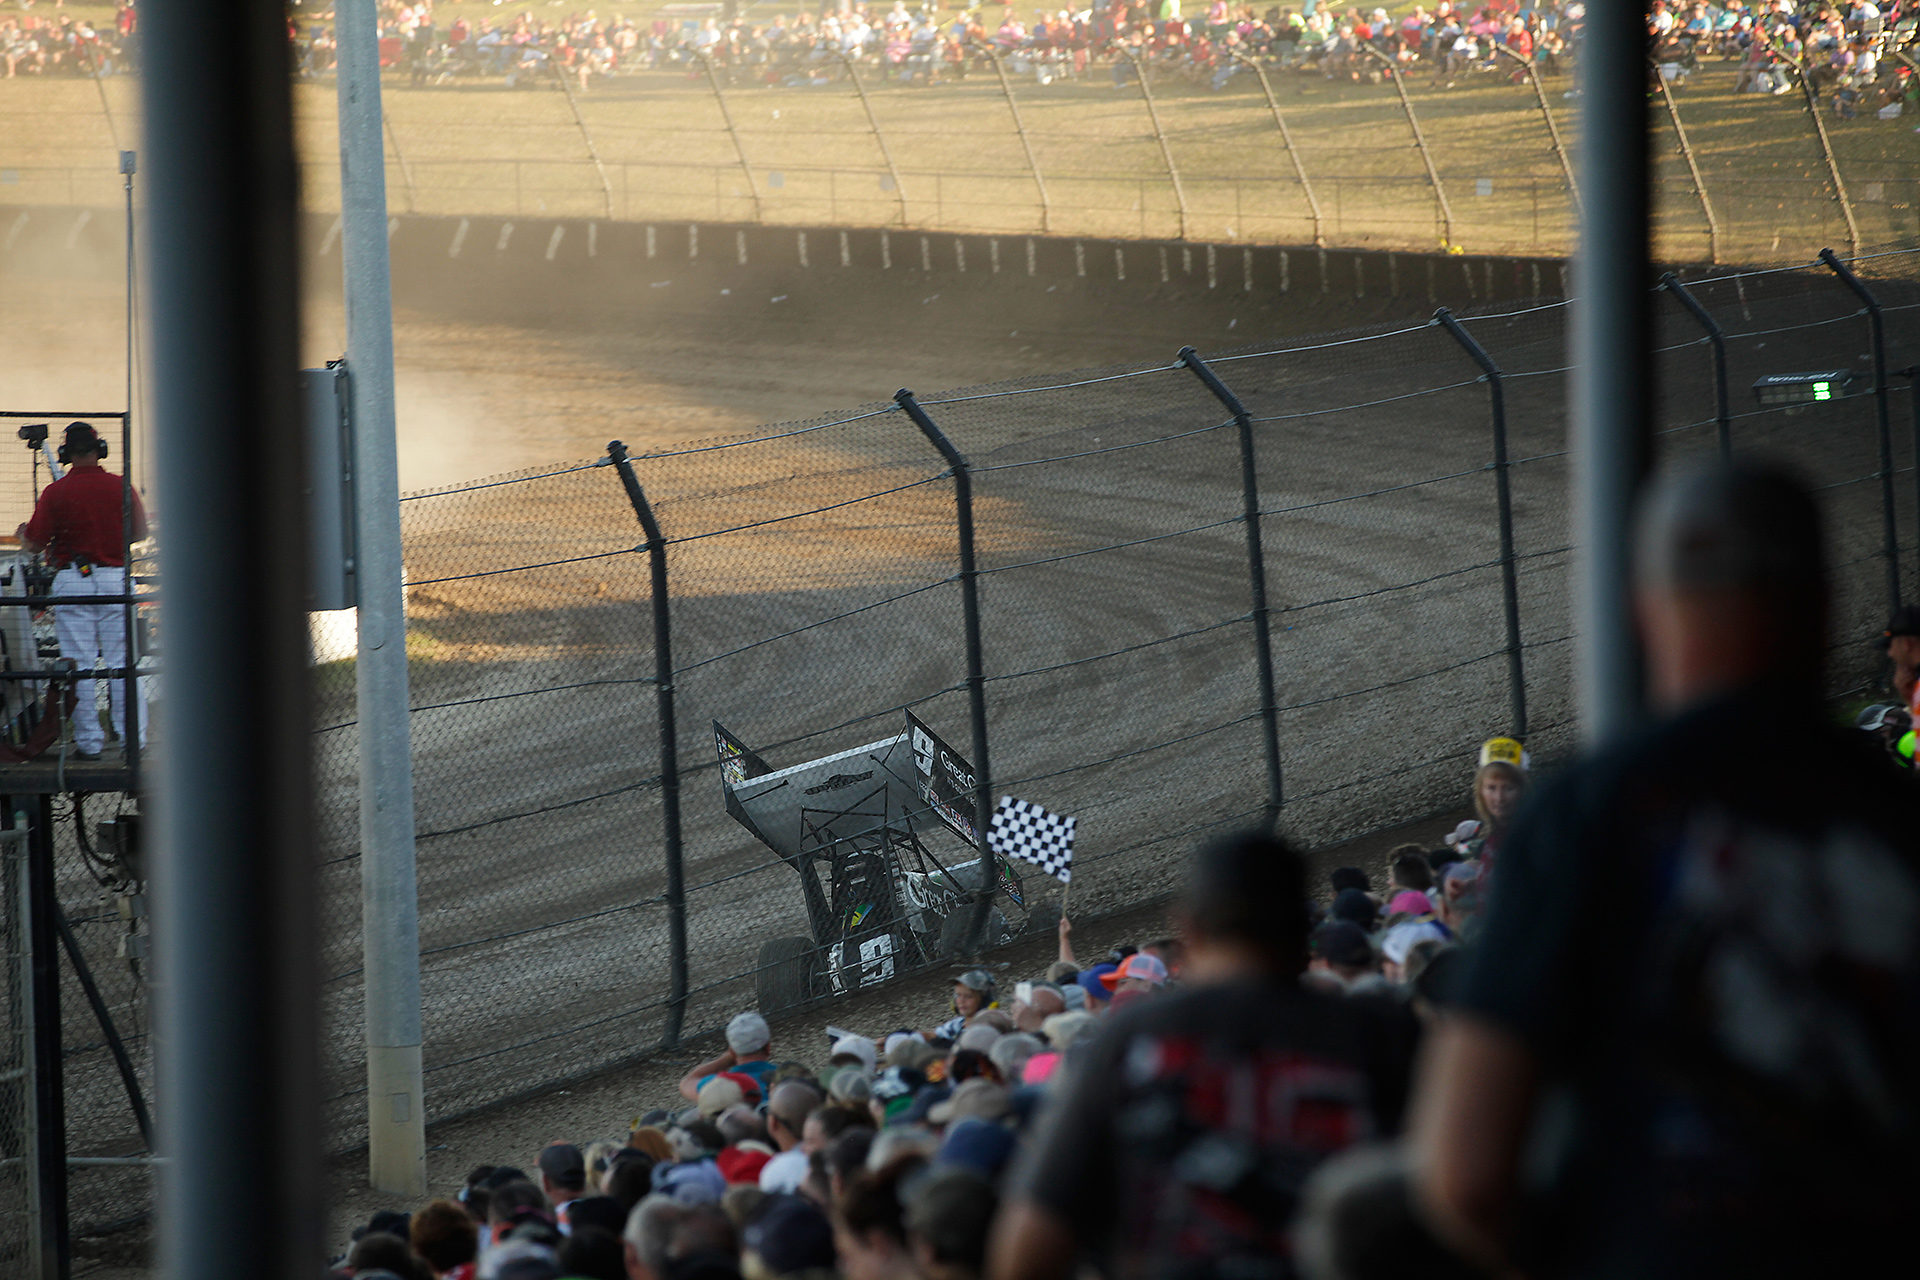 Daryn Pittman qualifying at Eldora Speedway. Pittman qualified 20th fastest in qualifying. He transferred through his heat and scored the Hard Charger award, having climbed from 23rd to 7th in The 33rd Annual Kings Royal. ( Jeffrey Turford / TDP )